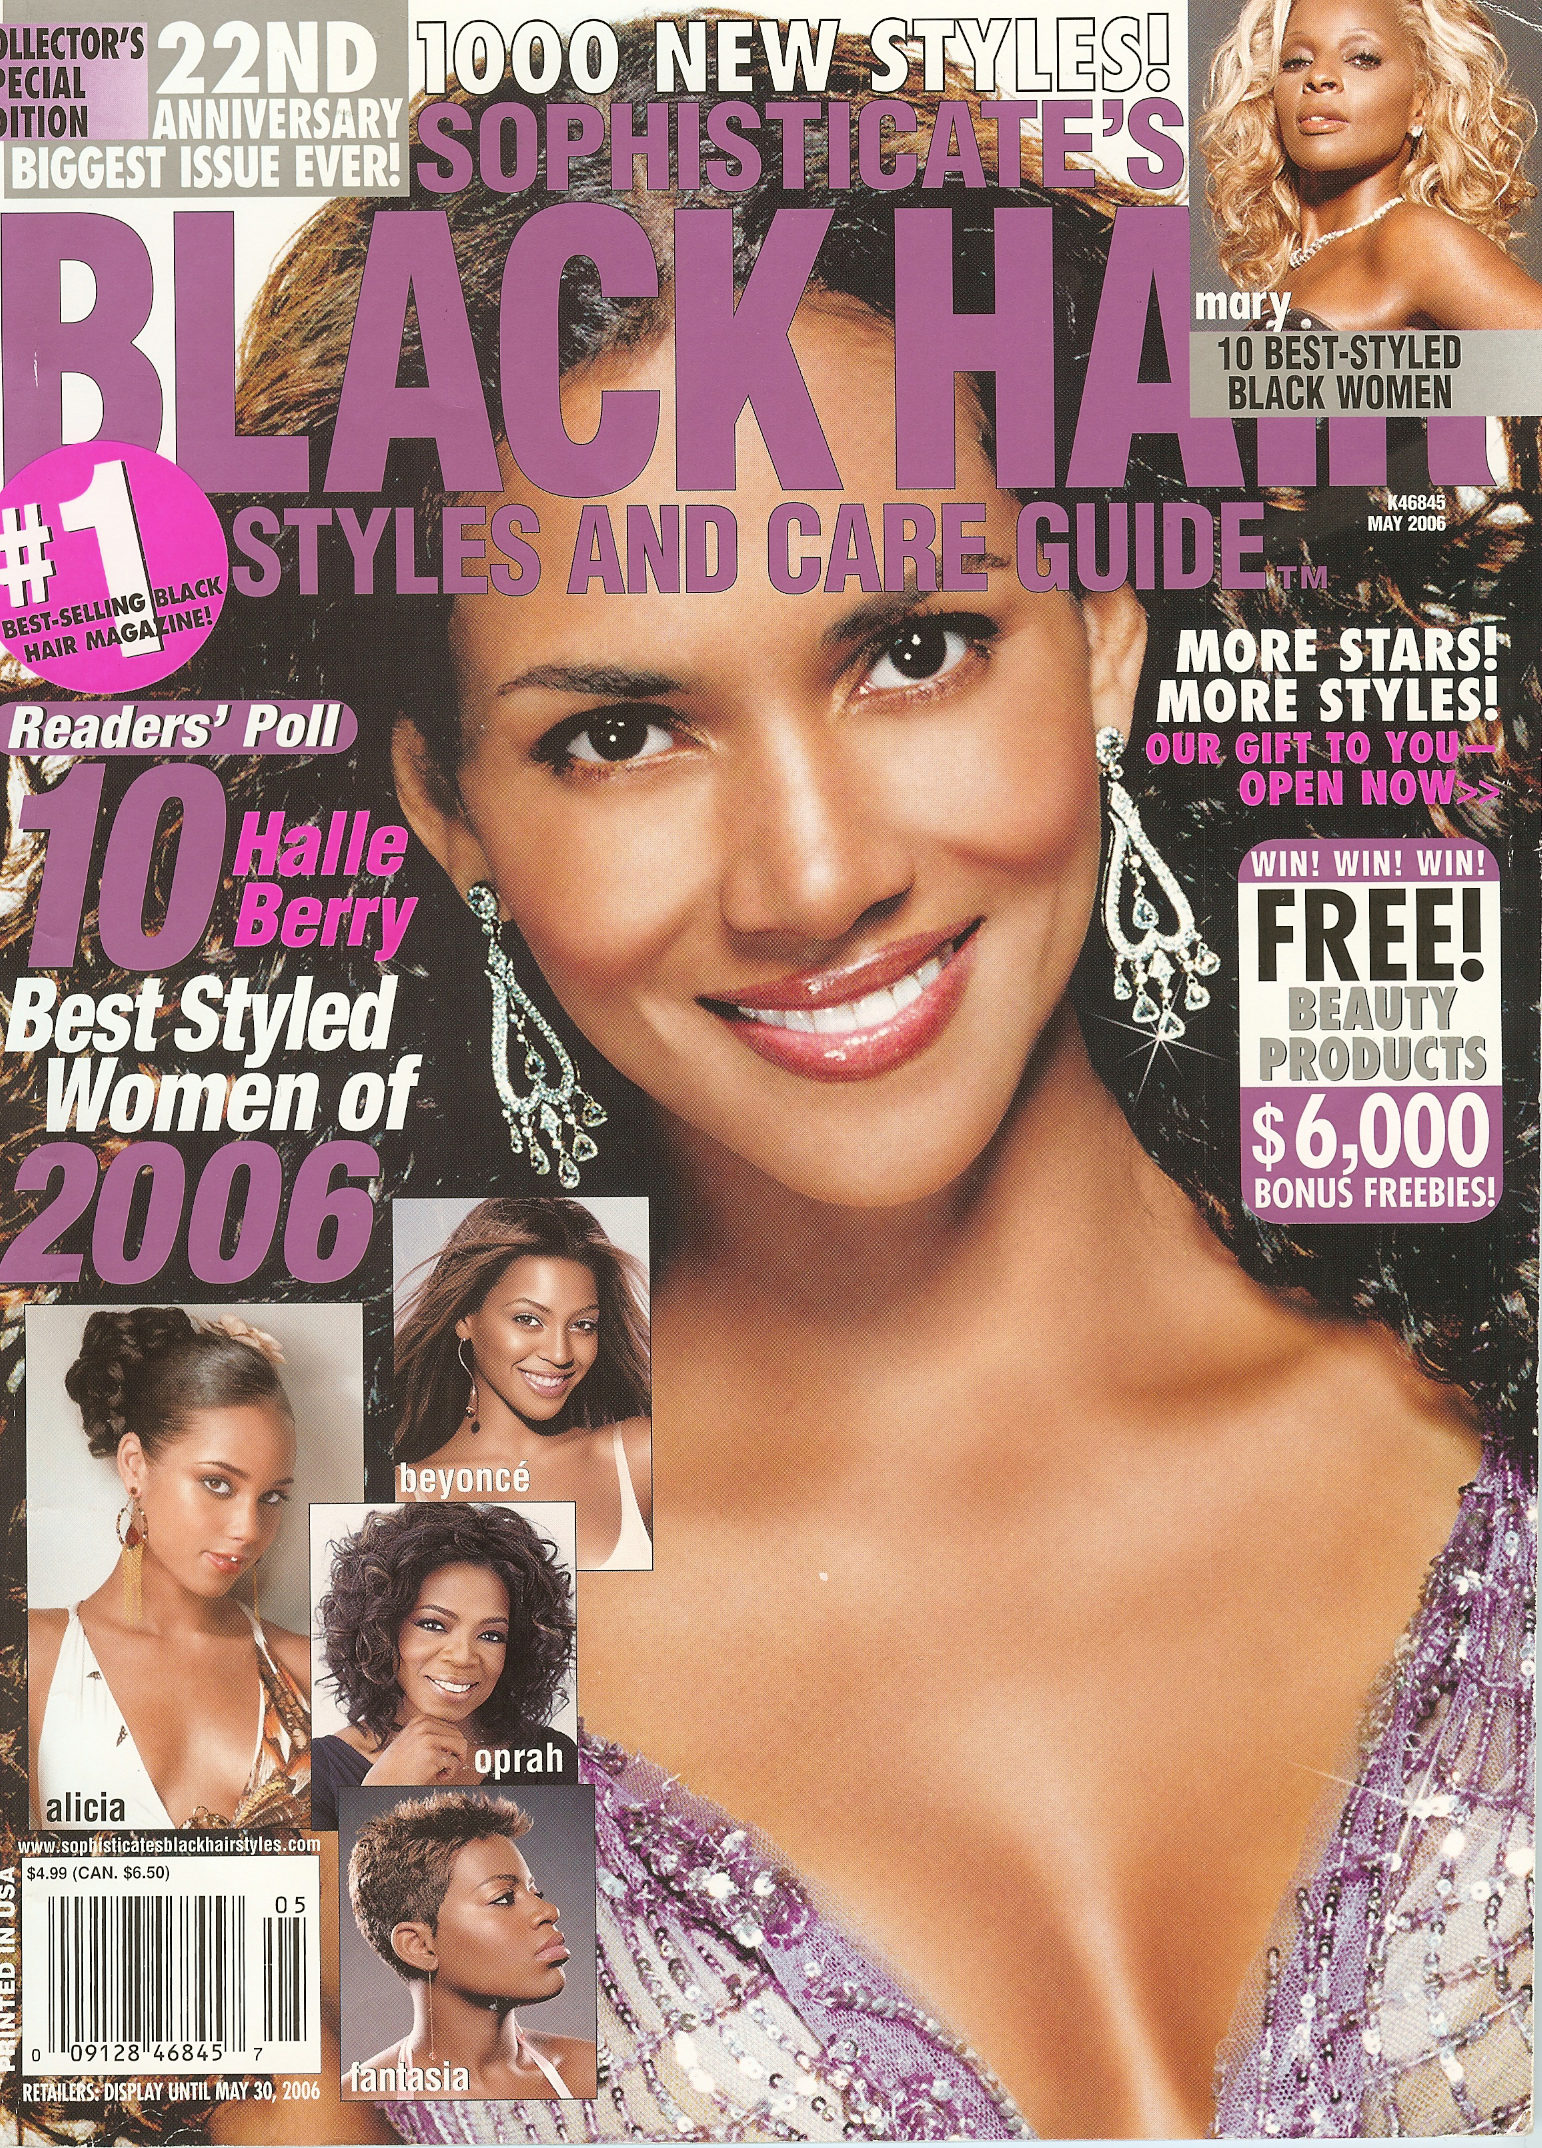 sophisticate s black hair styles and guide sophisticate s black hair